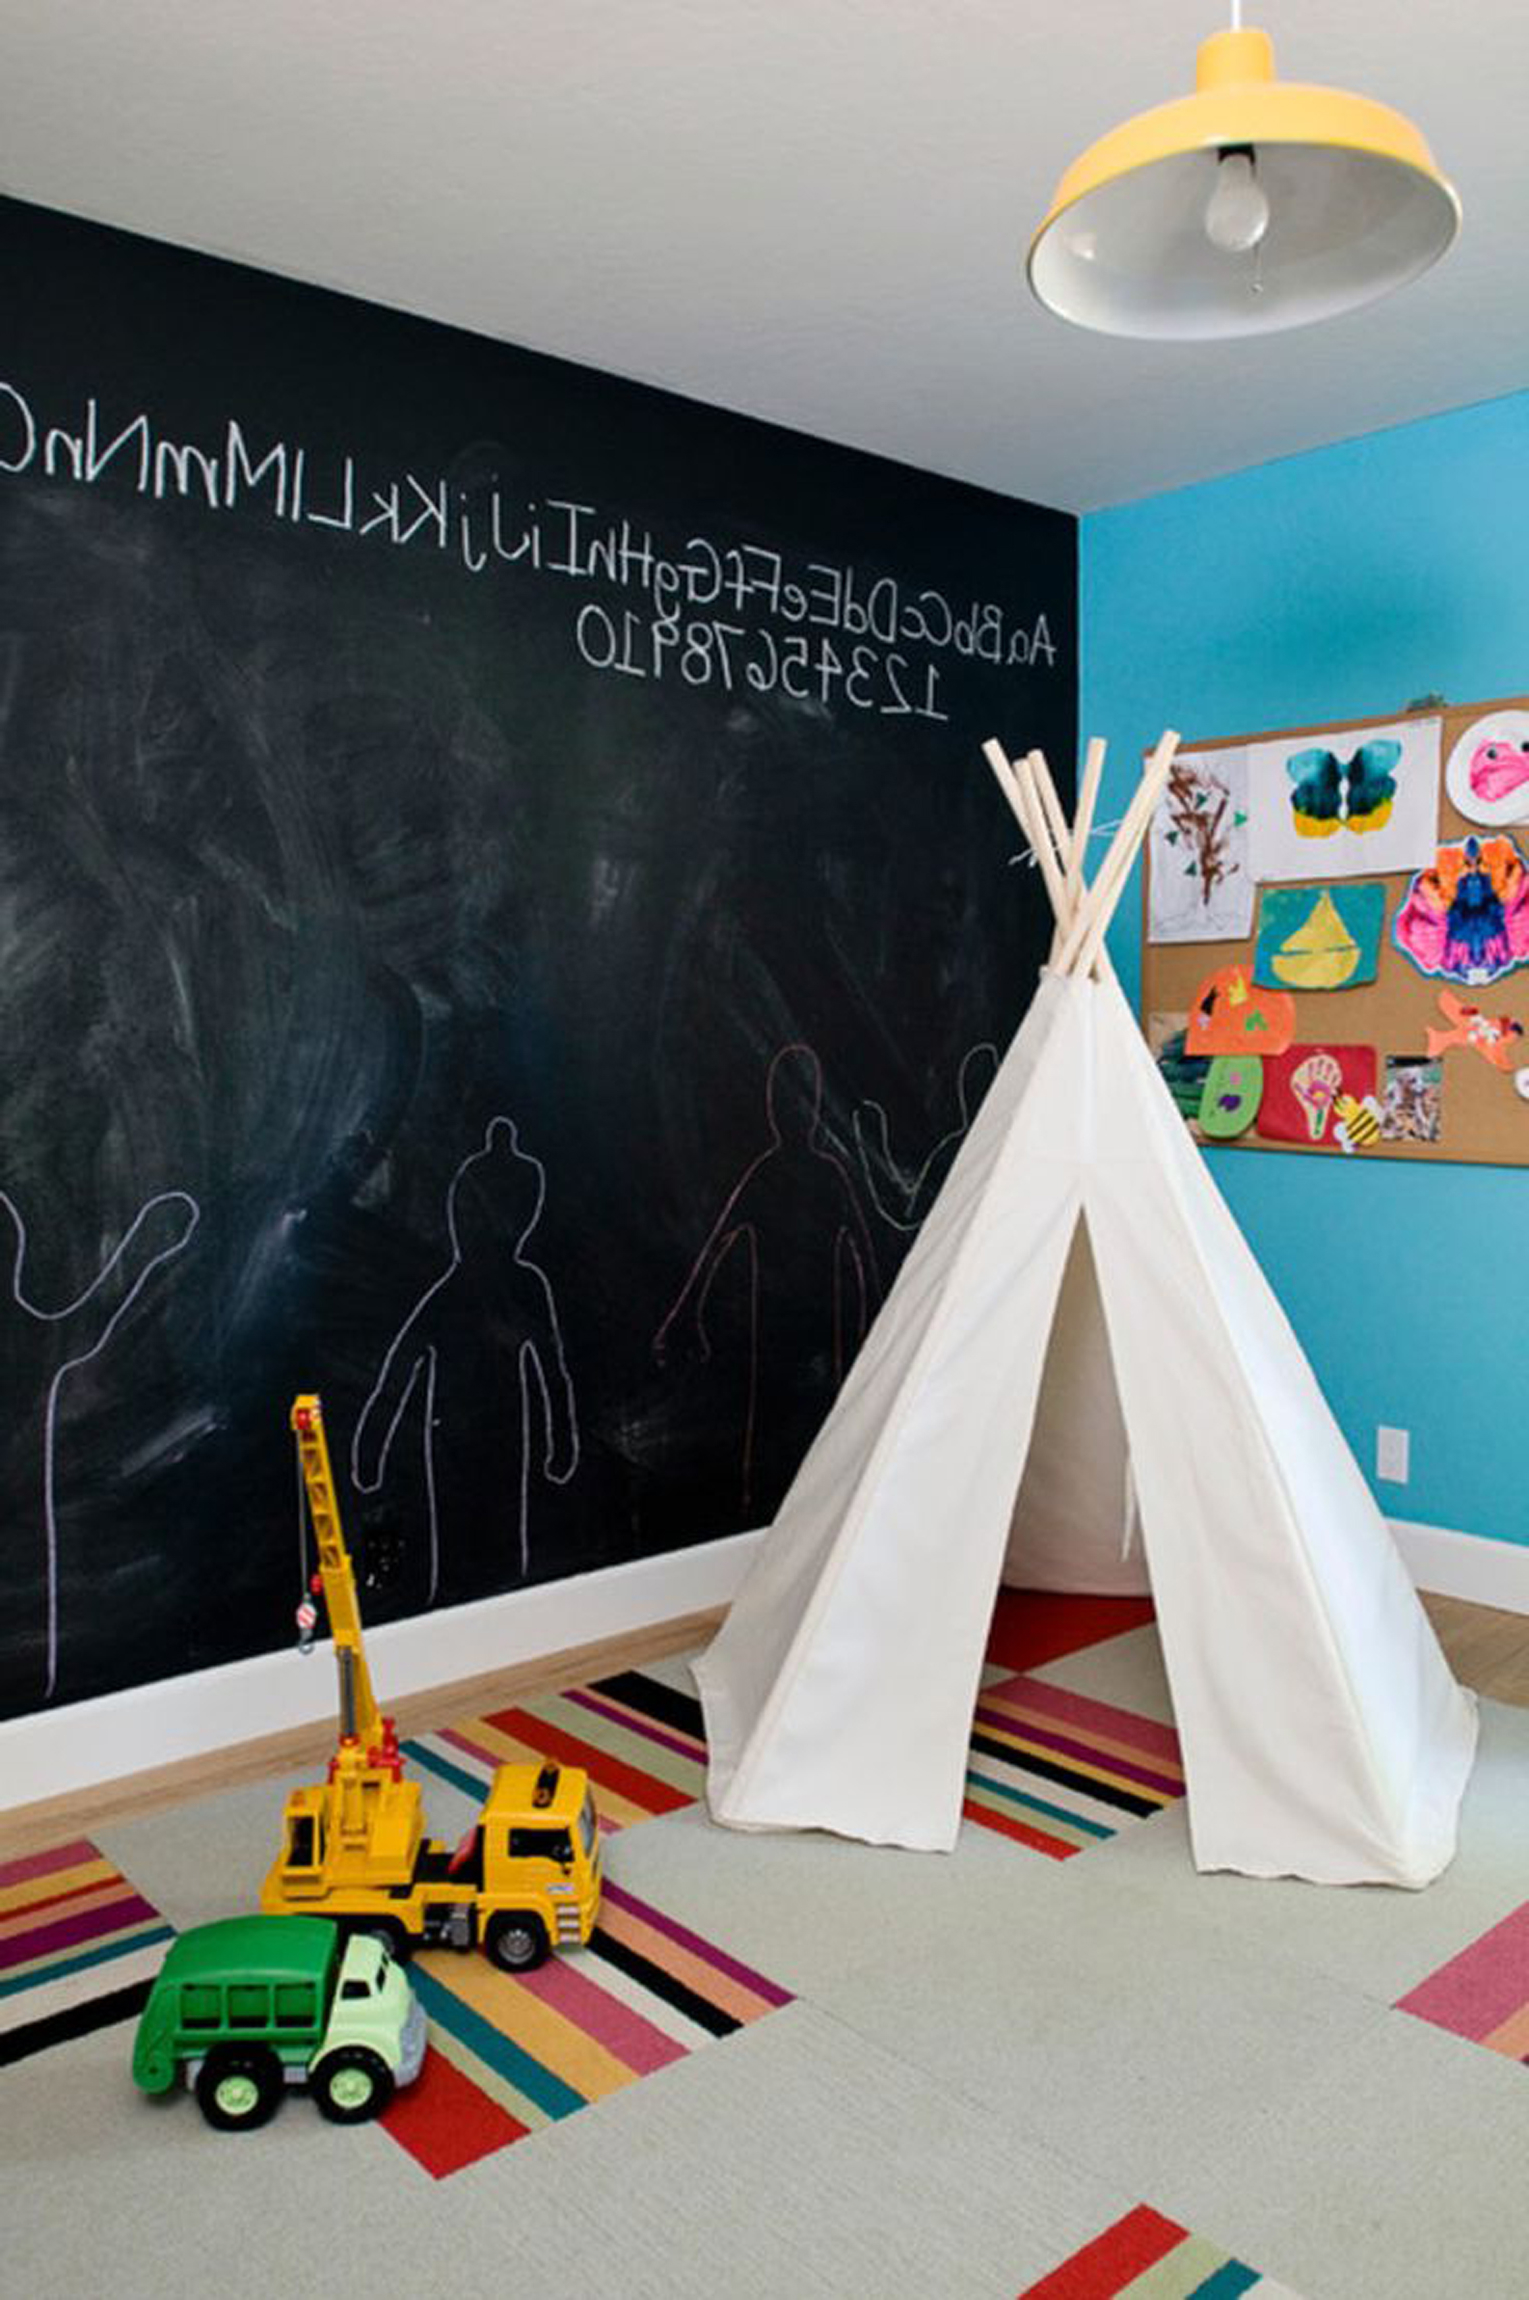 Kids Room Ideas With Cute White Kids Tent Ideas And Entrancing Chalkboar Wall Decoration Featuring Amusing Bright Blue Wall Colors And Artsy Retro Hanging Lamp Model (View 17 of 28)